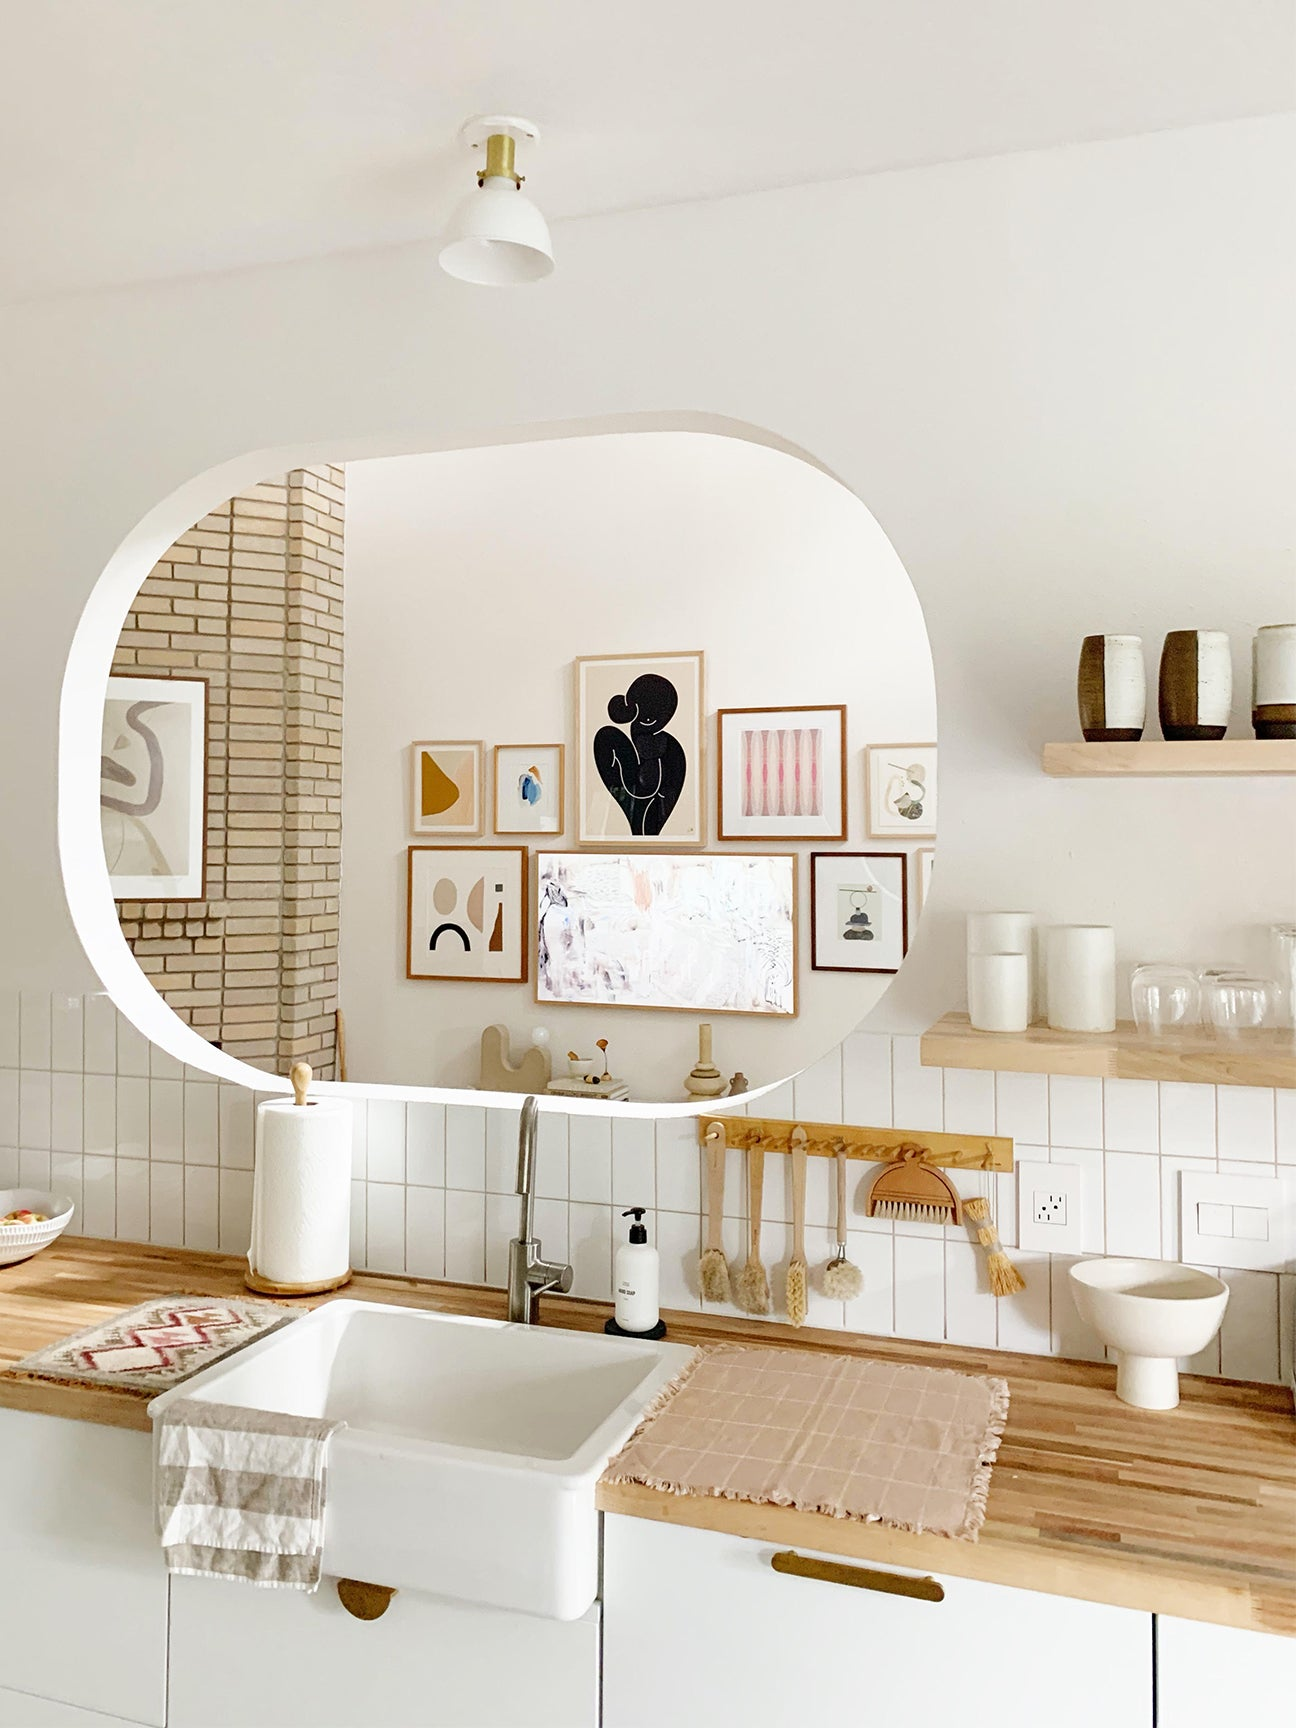 00-FEATURE-cut-out-kitchen-renovation-domino